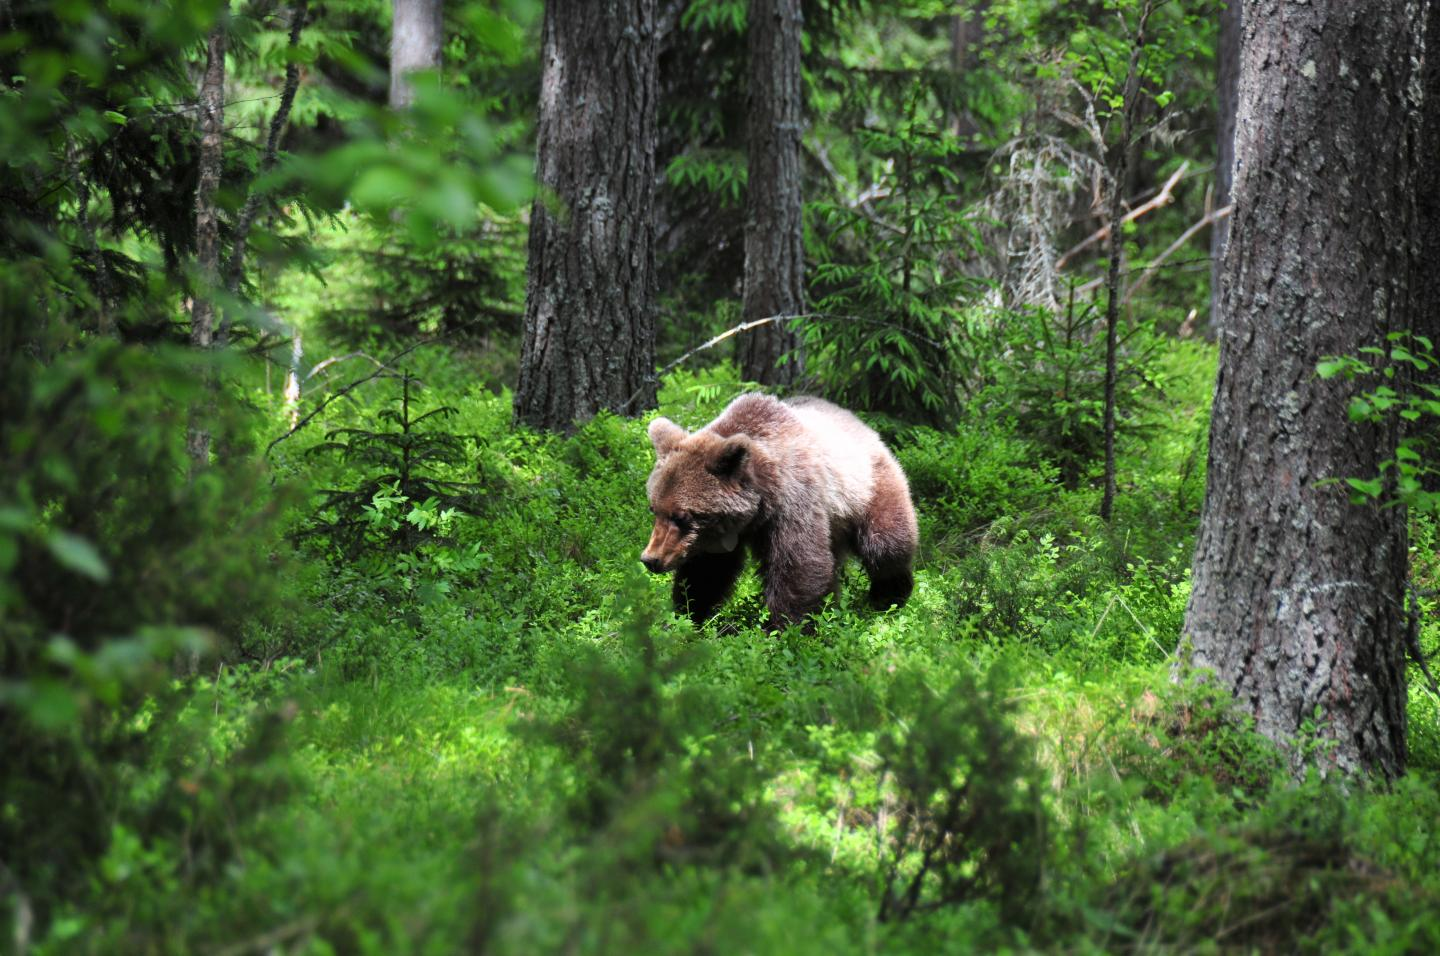 The brown bear (Ursus arctos) if native to Northern and Western Canada, and can be found in the Yukon, the Northwest Territories, British Columbia, and parts of Alberta. (Image credit: Ole Fröbert).